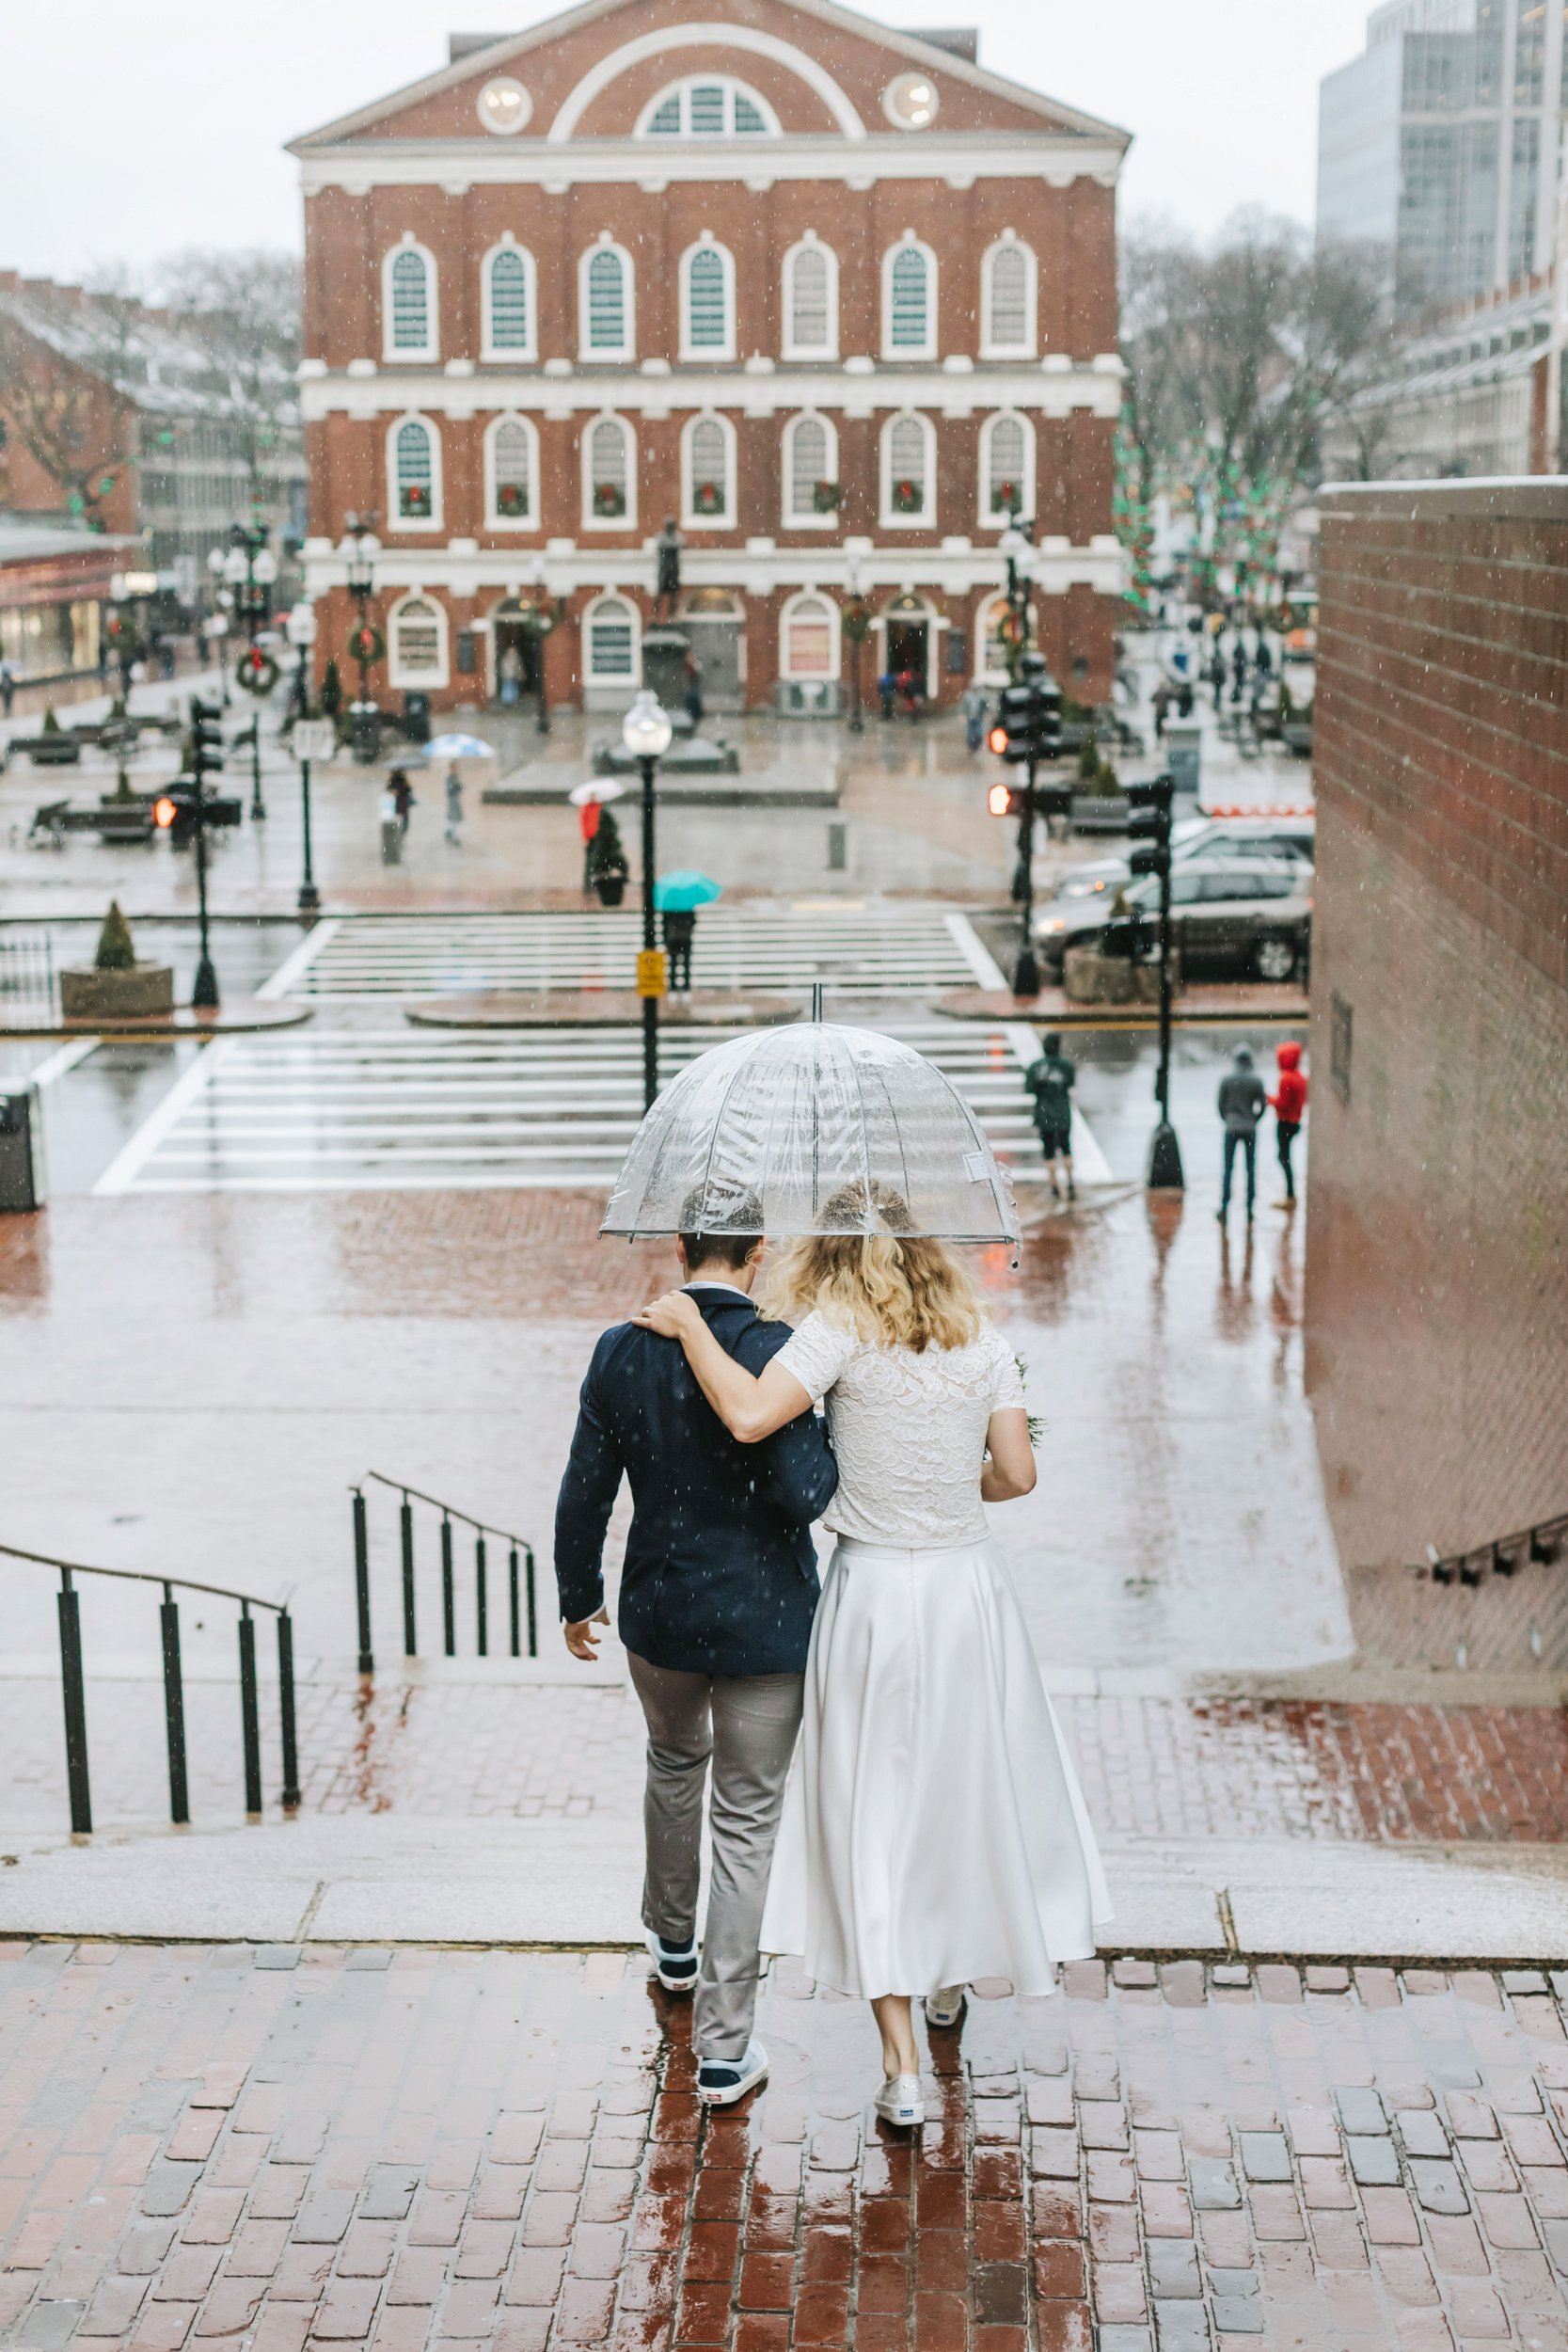 Boston-City-Hall-Wedding-Lena-Mirisola-Samantha-Pat-Mewis-1.JPG